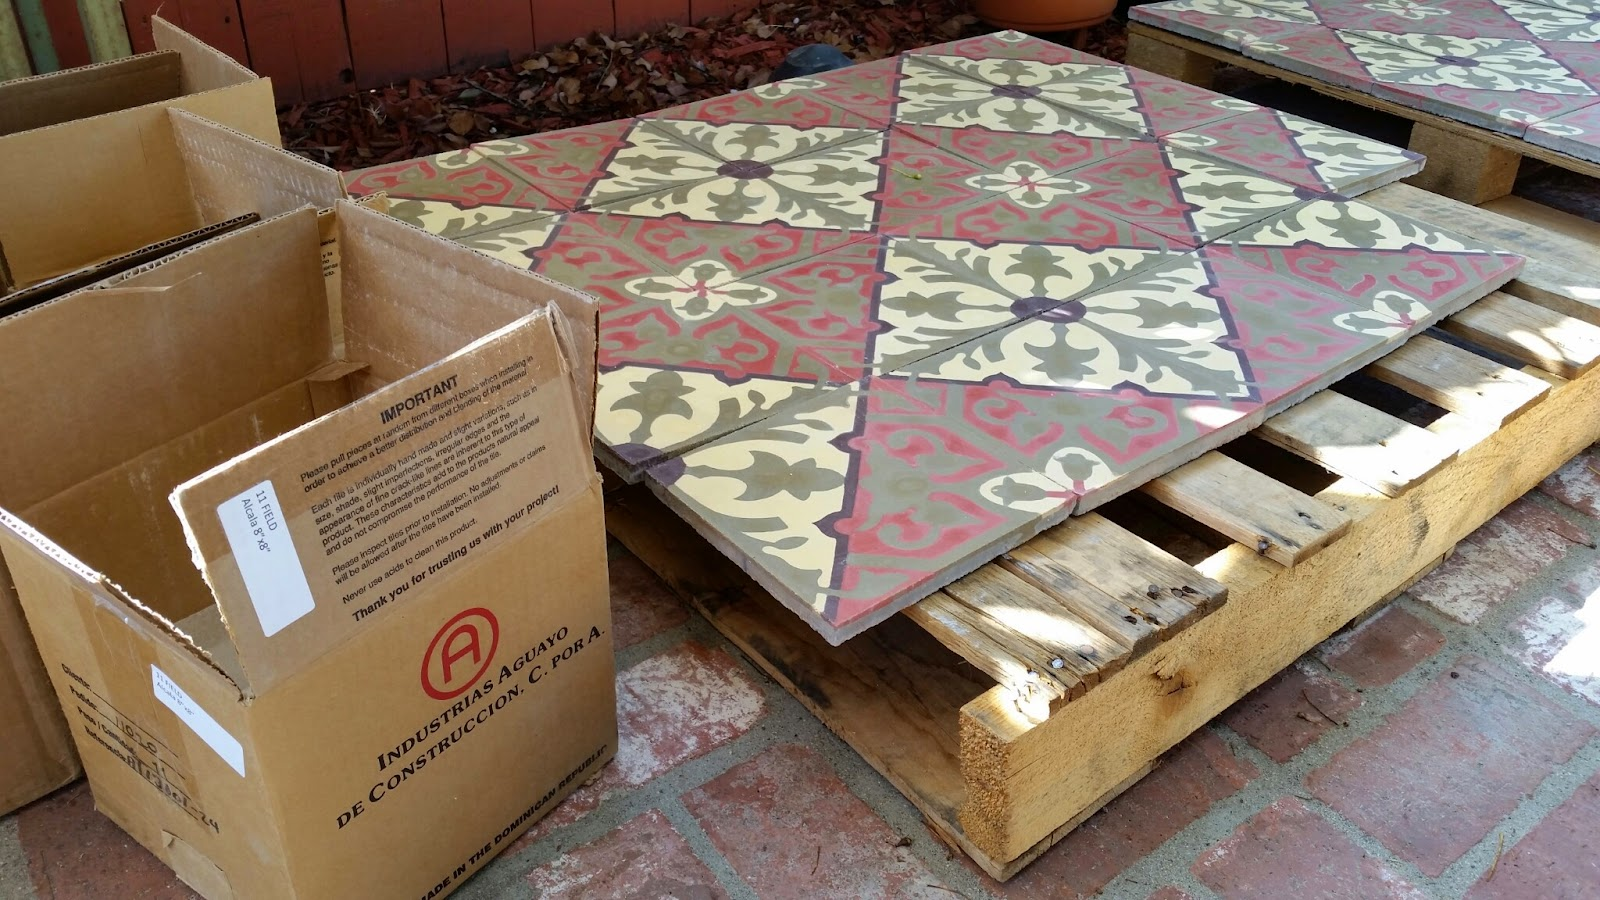 Cement tiles are removed from the box and placed on pallets prior to applying the sealer.